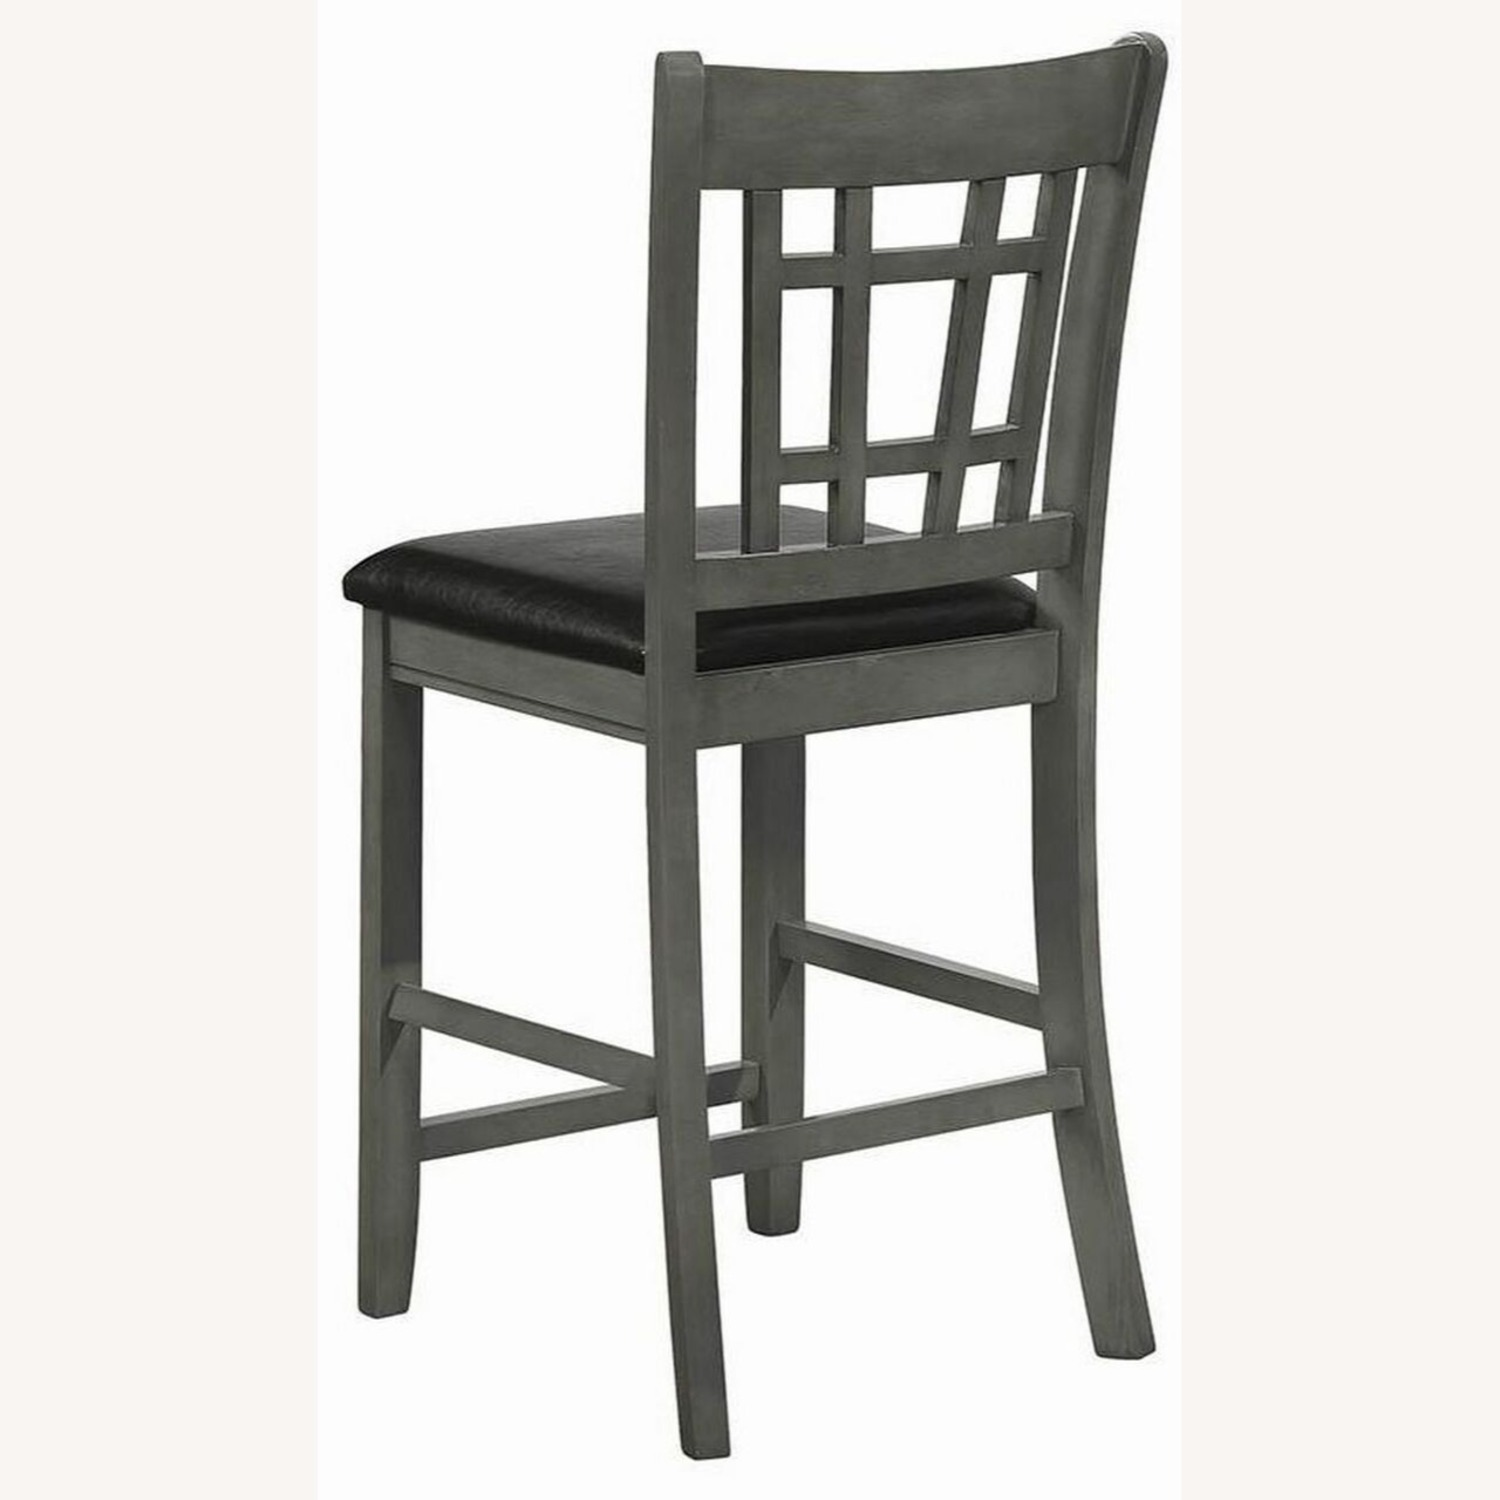 Counter Height Chair In Medium Gray Finish - image-5